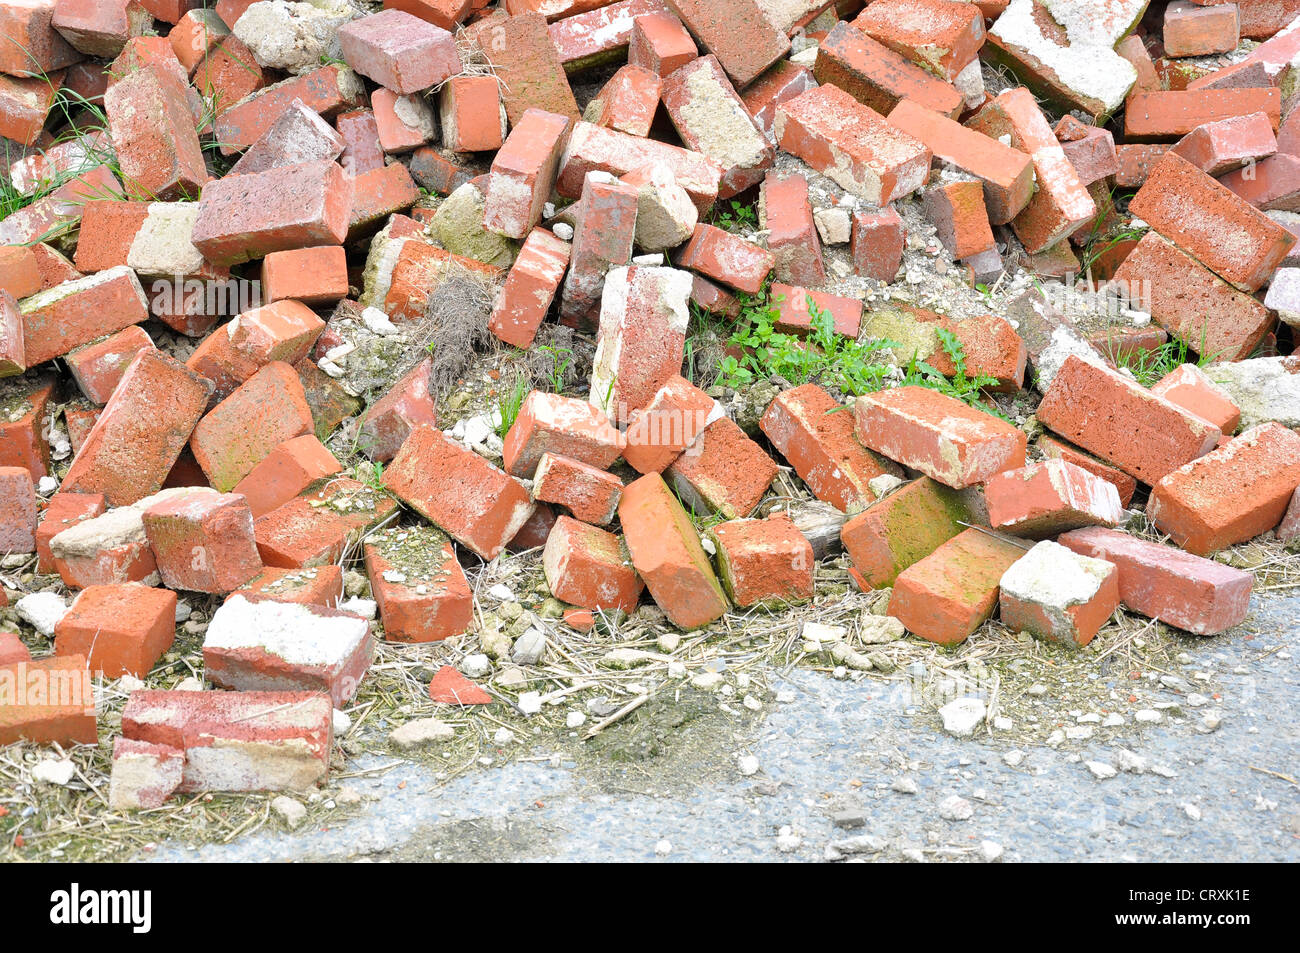 Pile of old red bricks rubble - Stock Image